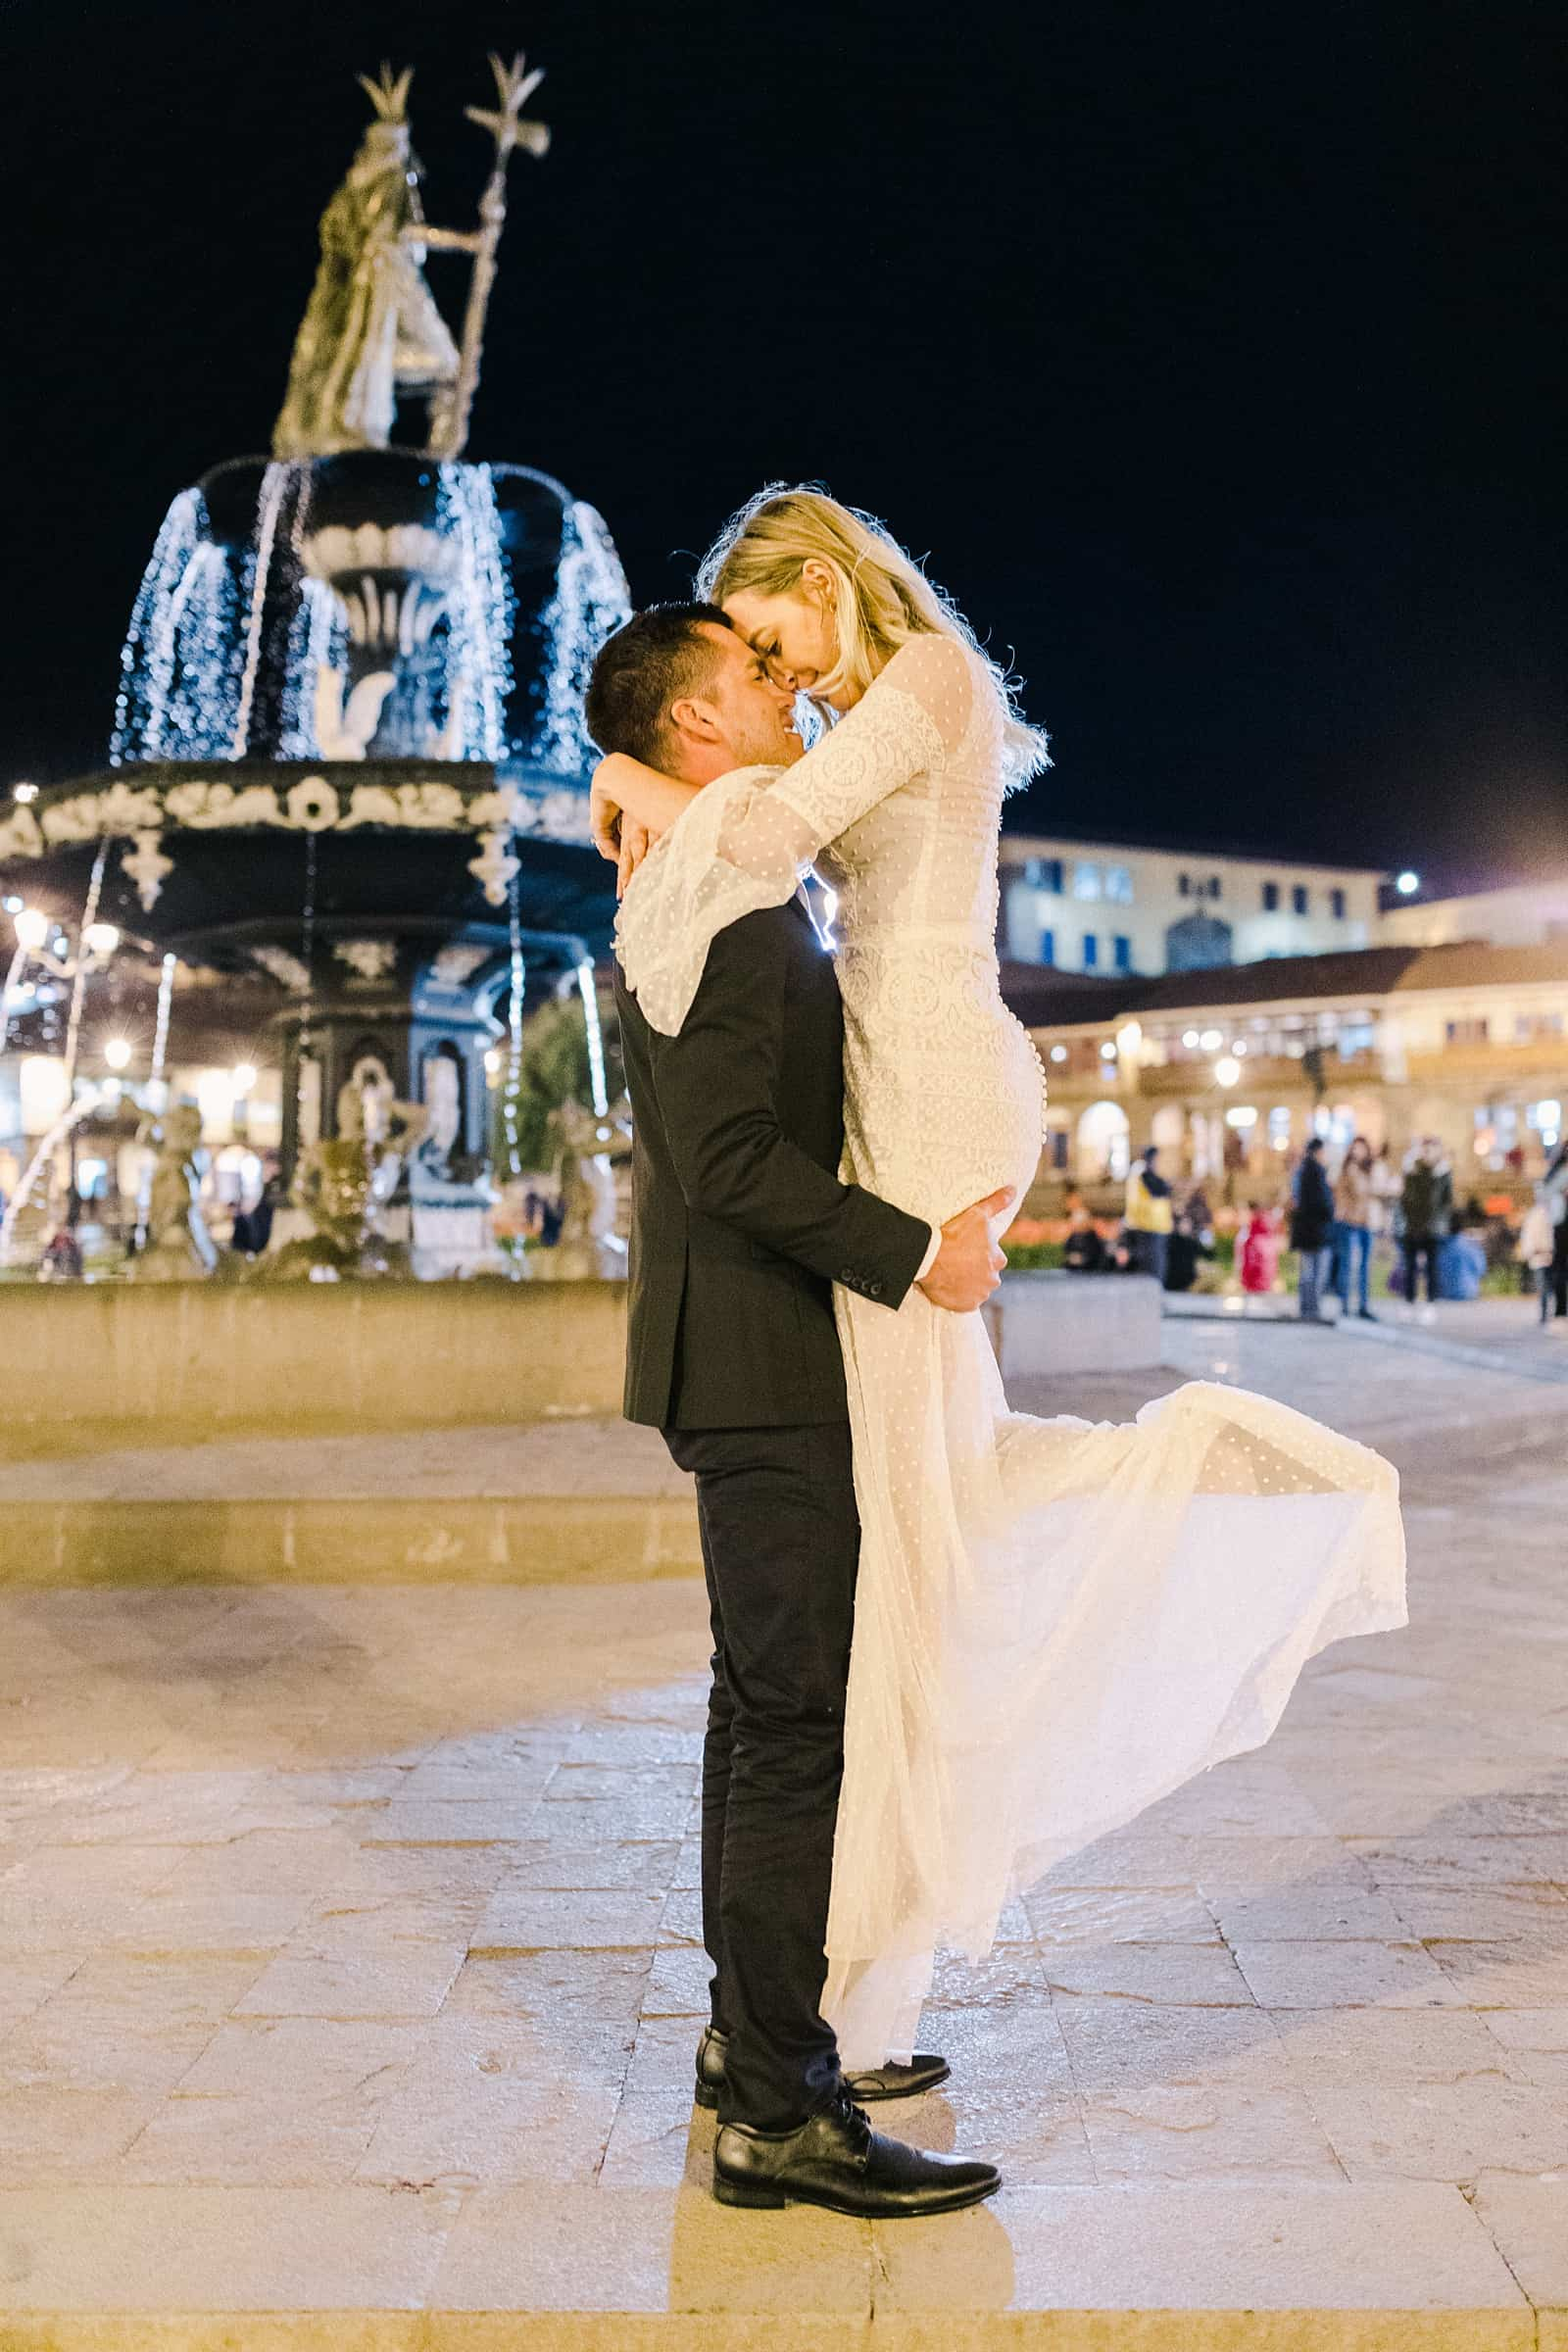 Cusco Peru Destination Wedding Inspiration, travel photography, bride and groom dance at Plaza de Armas at night